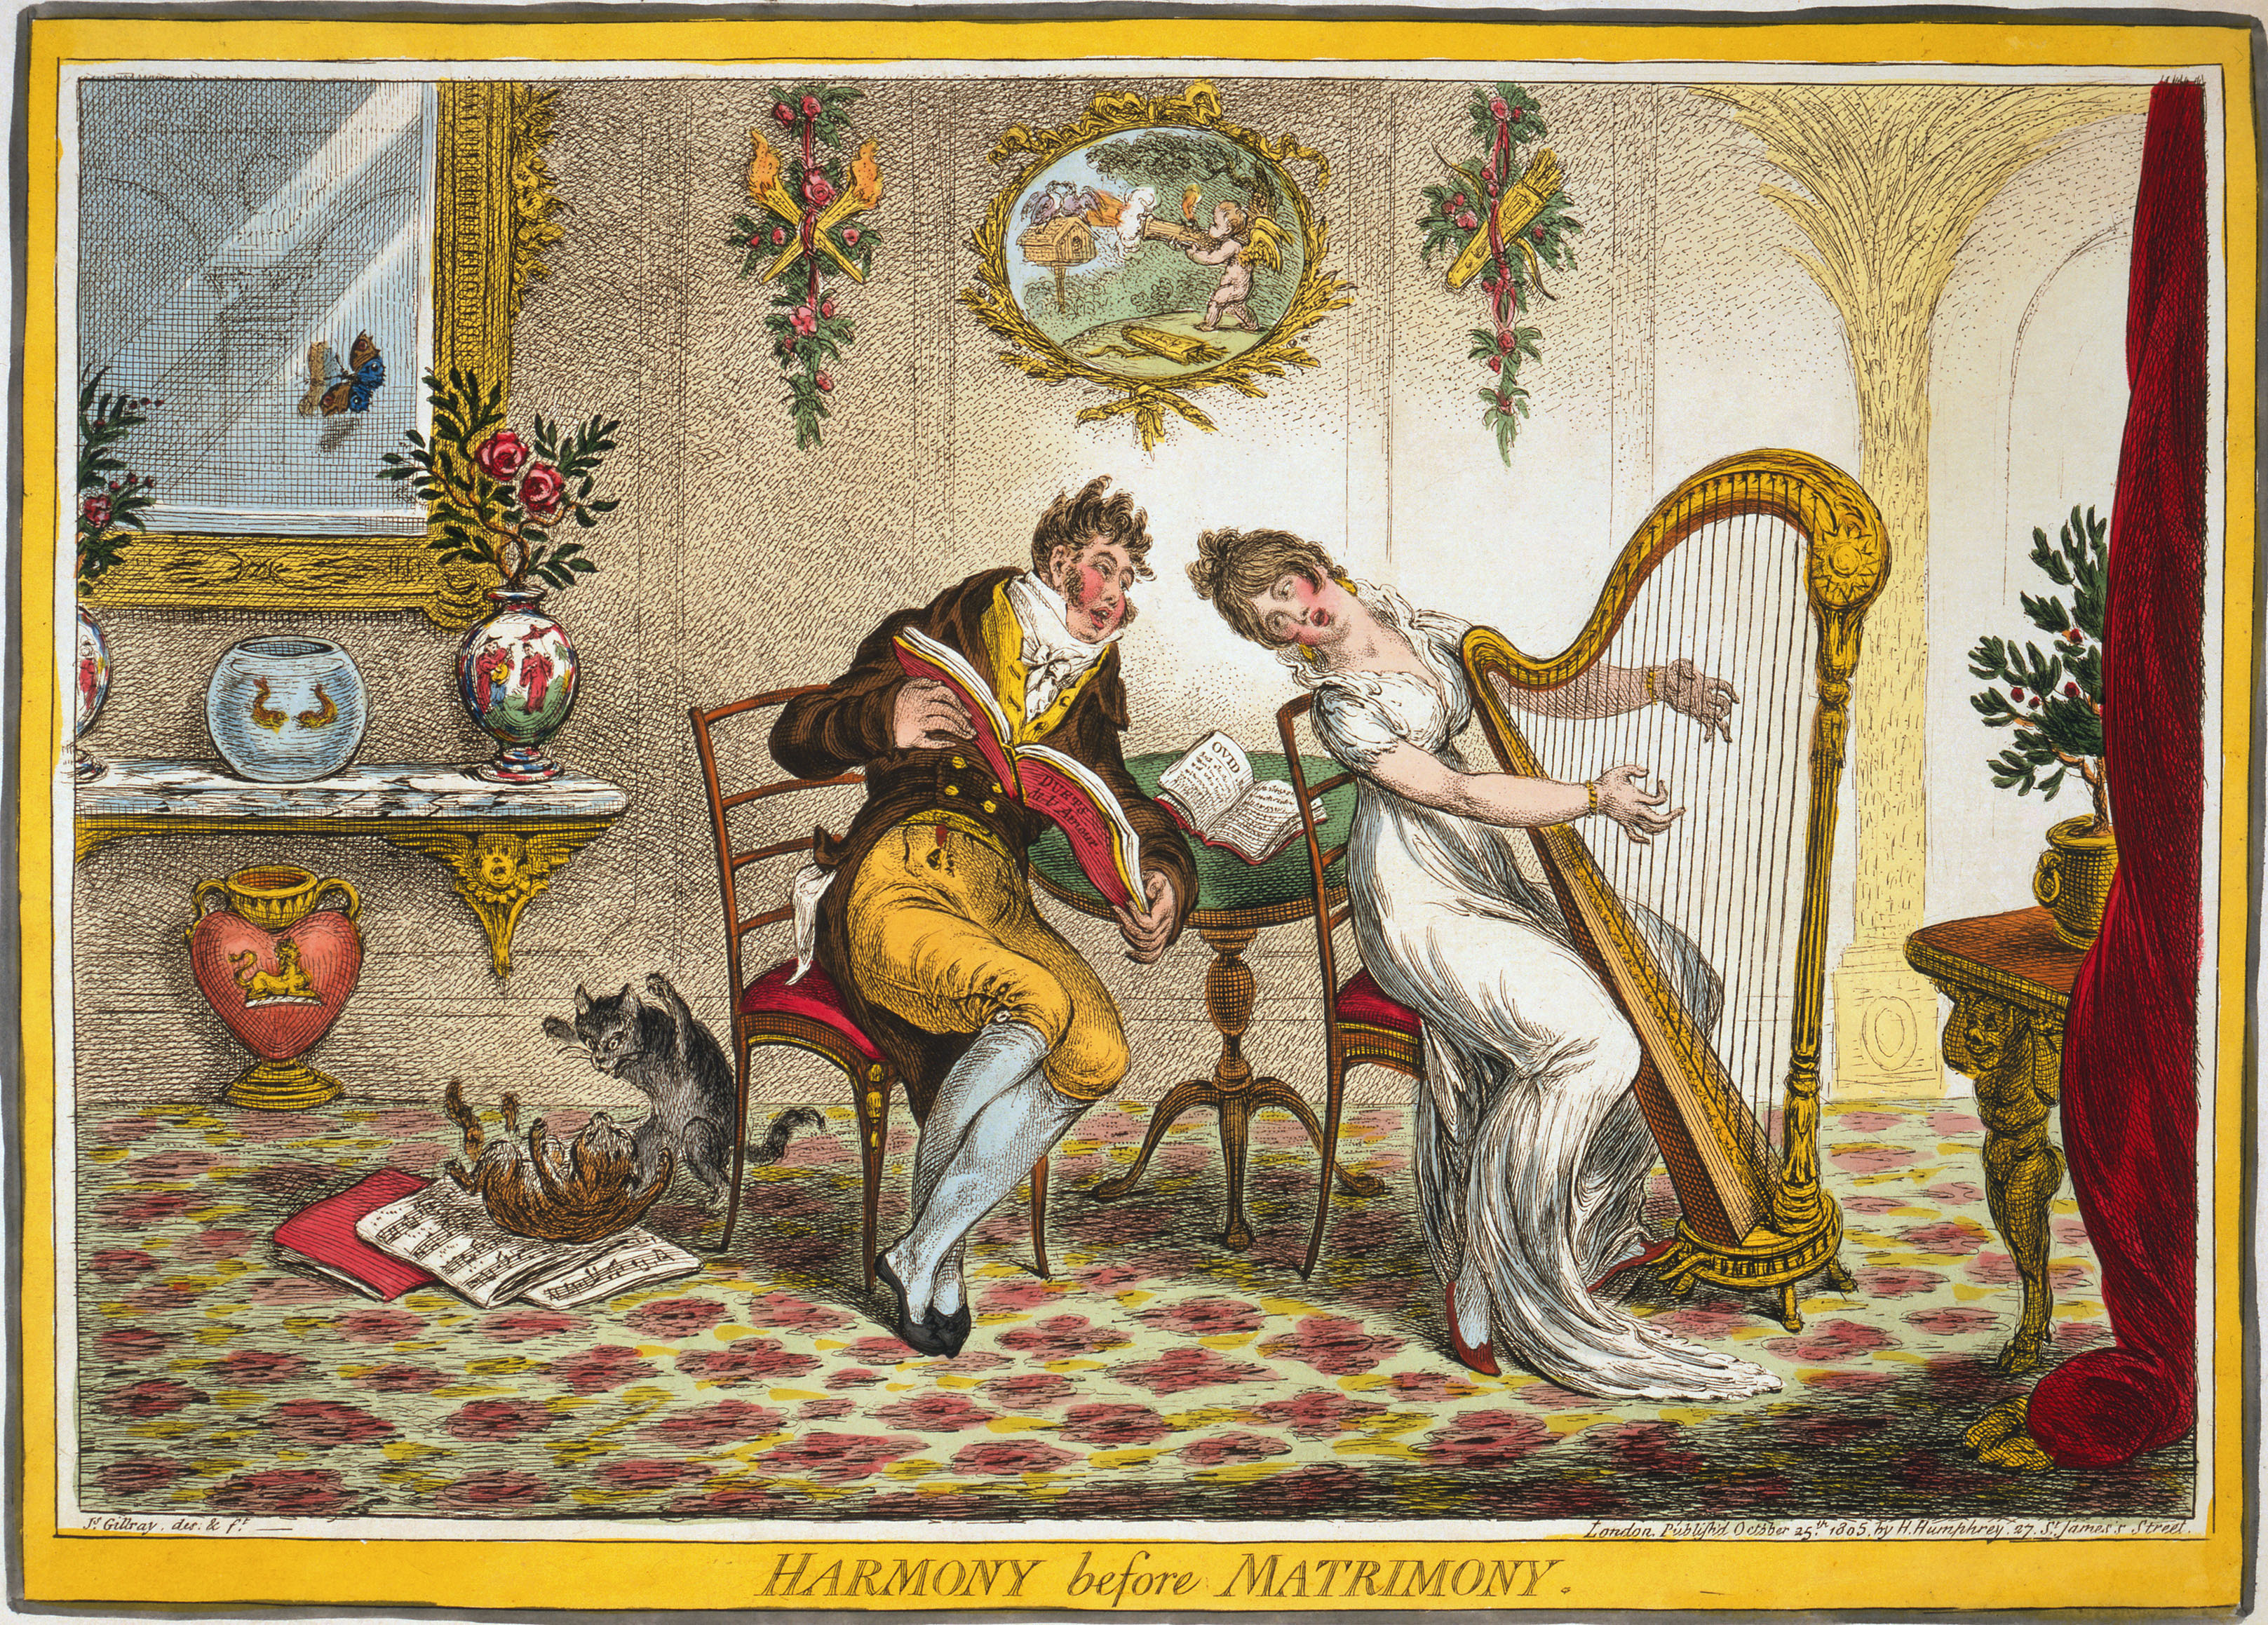 1805-gillray-harmony-before-matrimony.jpg